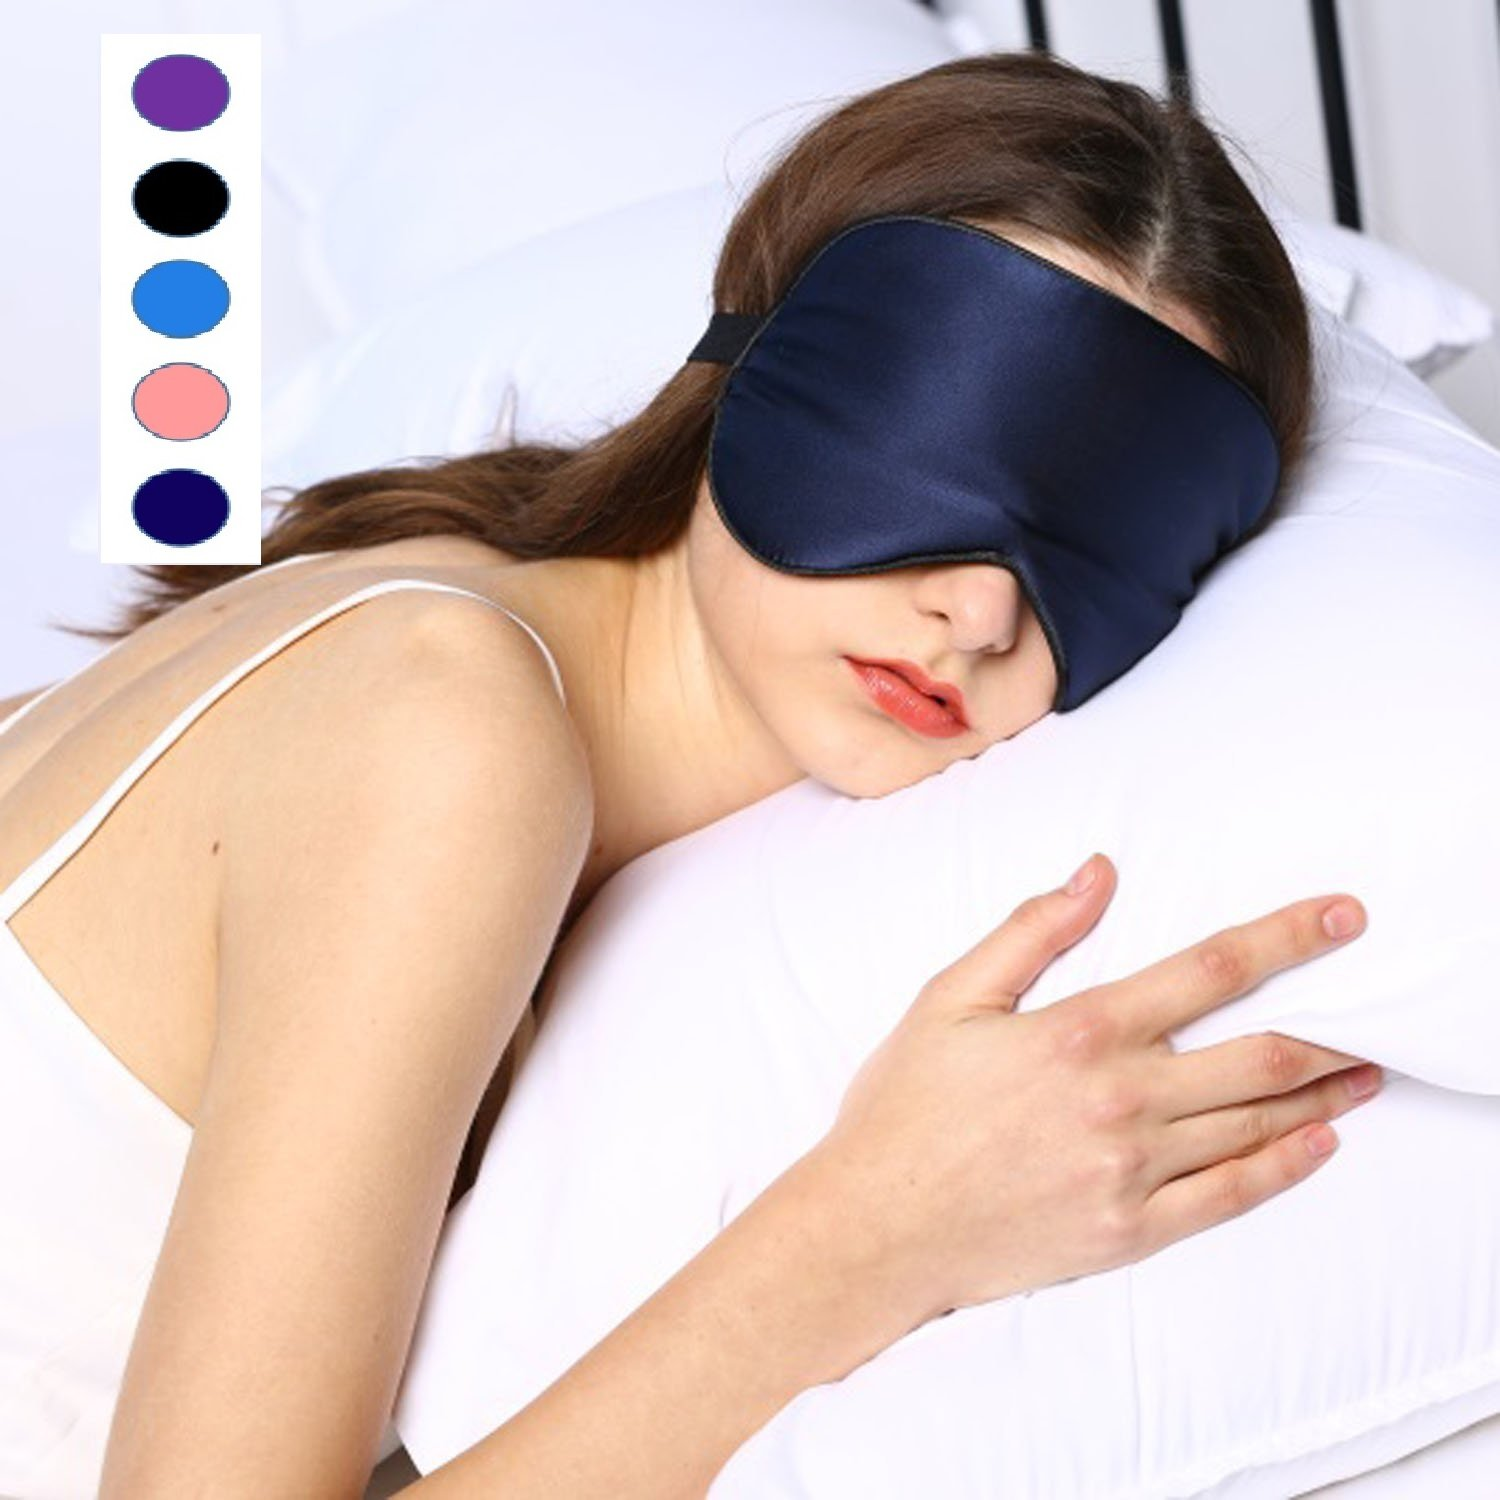 Silk Sleep Mask & Blindfold, Soft Eye Mask with Adjustable Head Strap, Deep Rest Eye Masks for Sleeping Night Eyeshade, Eye Cover for Travel, Shift Work & Meditation (Navy blue)